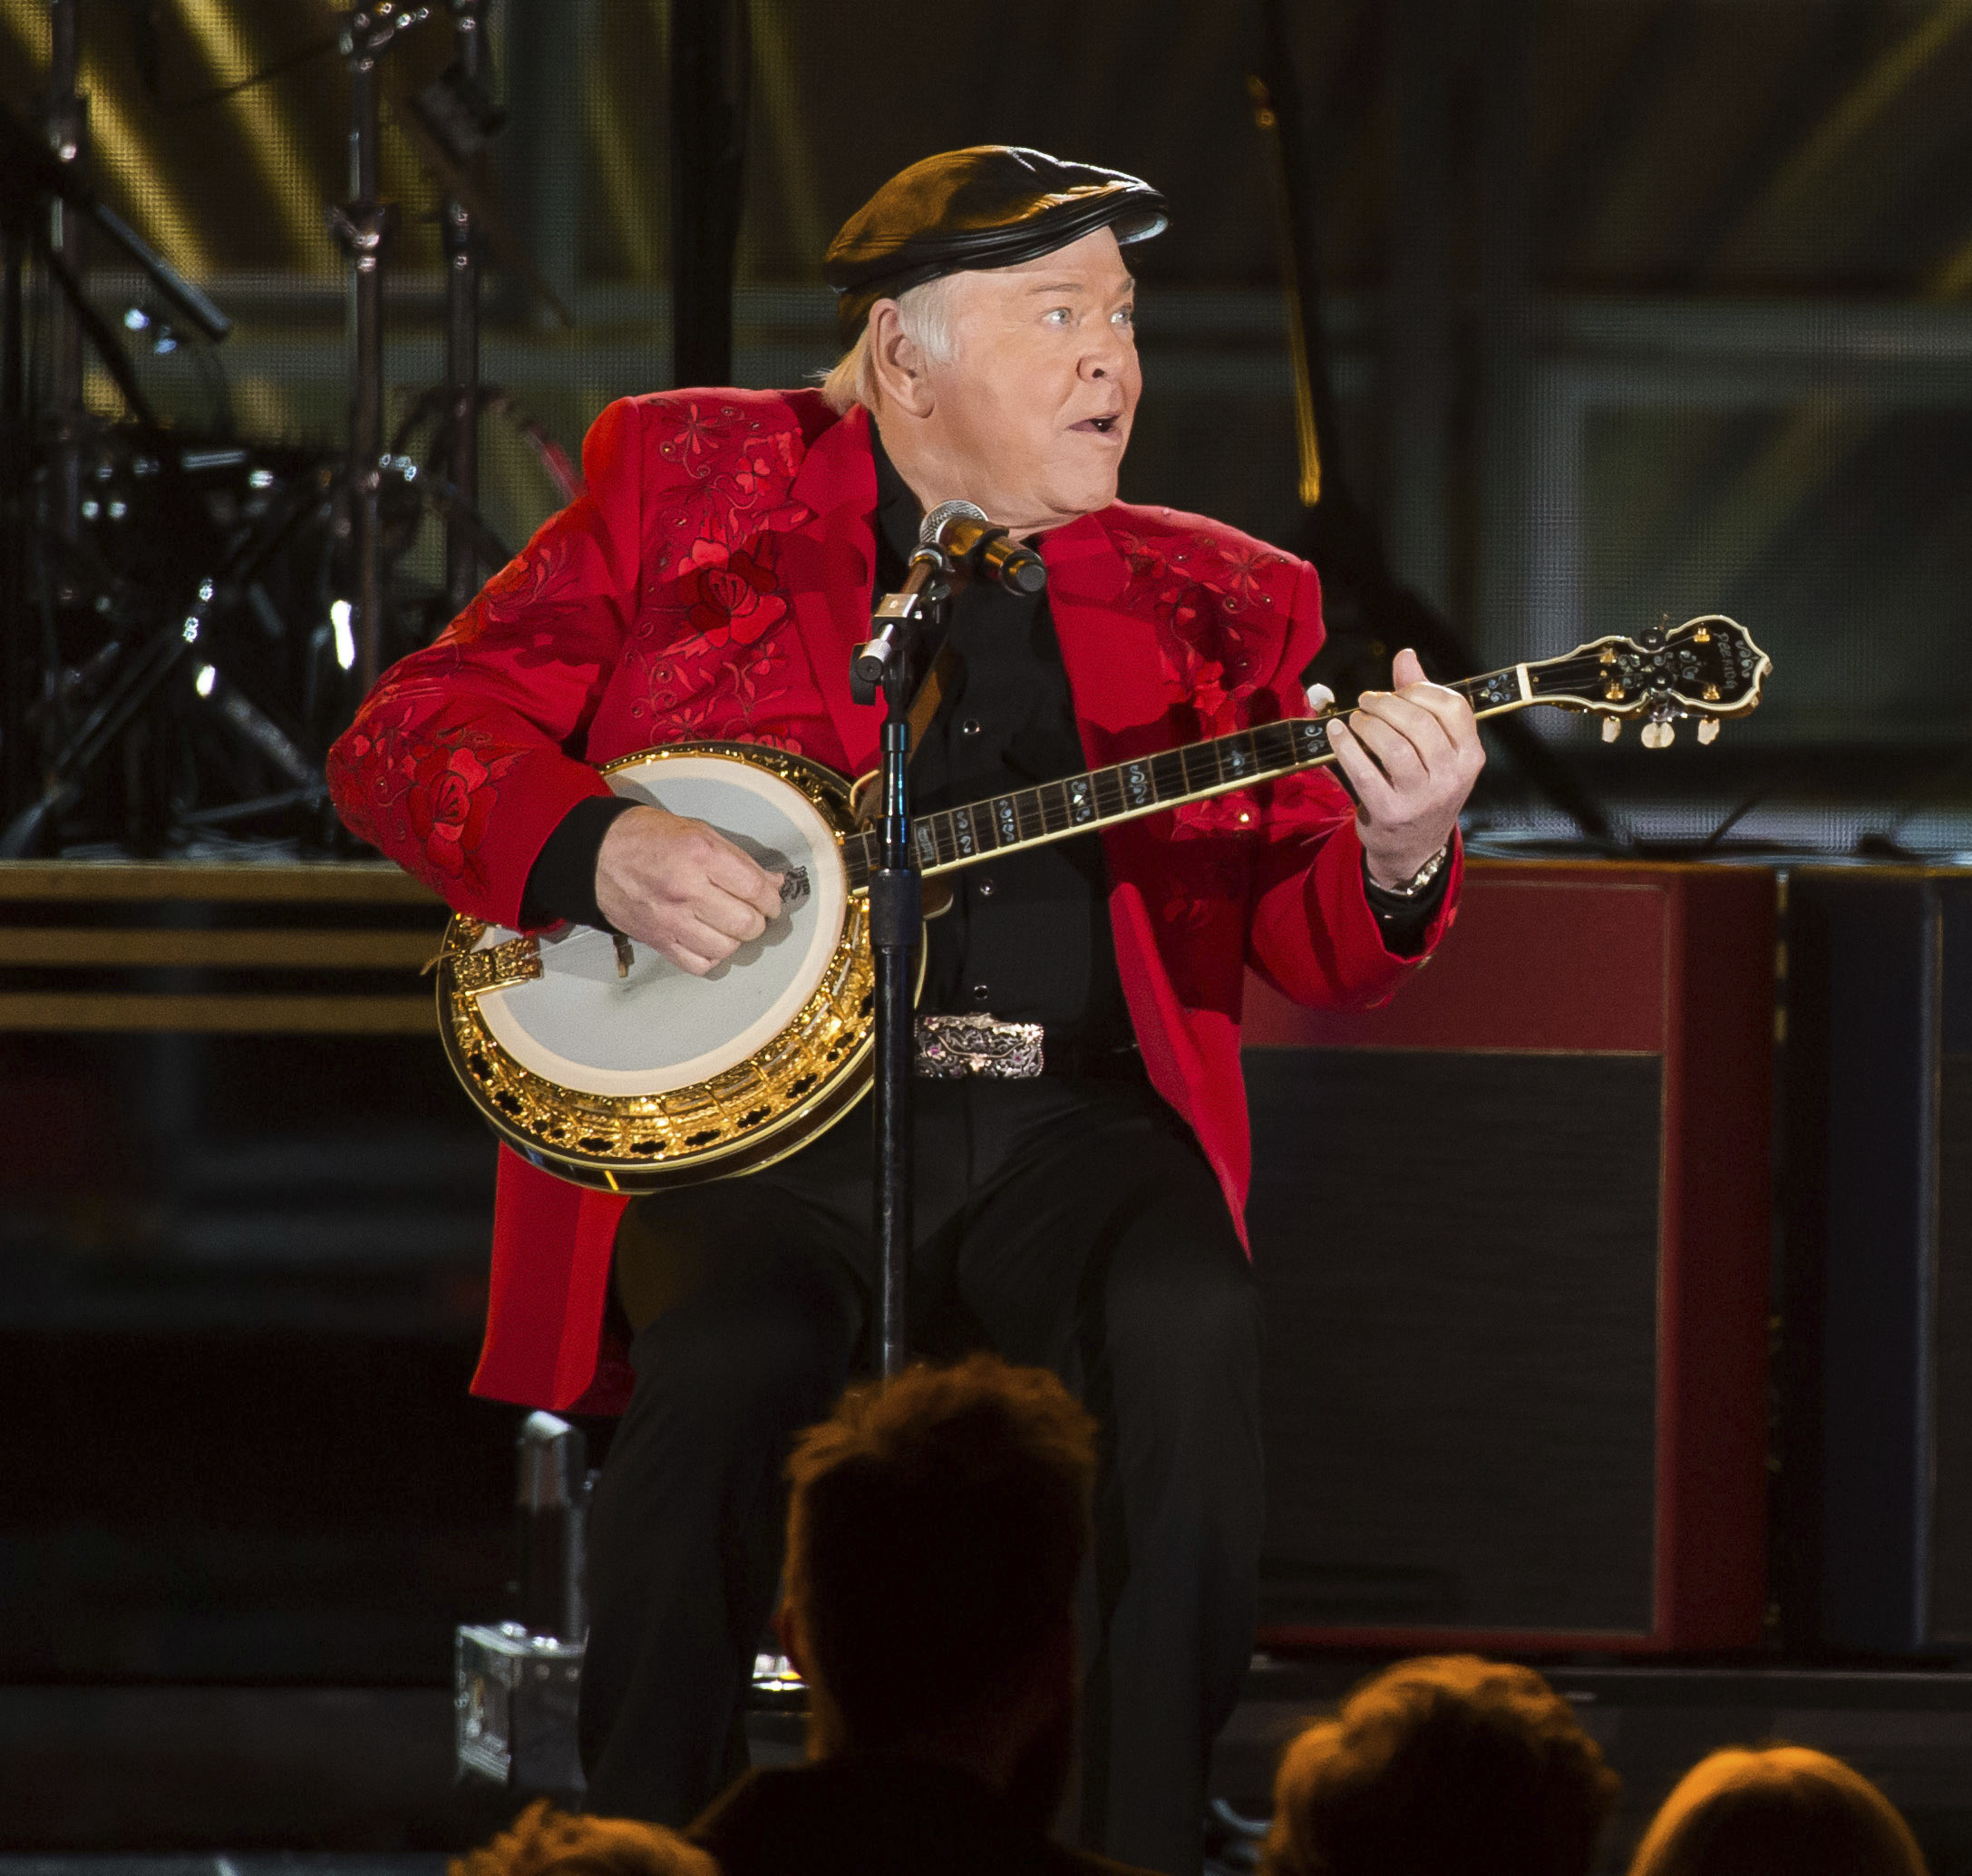 "<div class=""meta image-caption""><div class=""origin-logo origin-image none""><span>none</span></div><span class=""caption-text"">Roy Clark, a country star known for headlining the TV show ''Hee Haw,'' died on Nov. 15 at age 85. (Charles Sykes/Invision/AP)</span></div>"